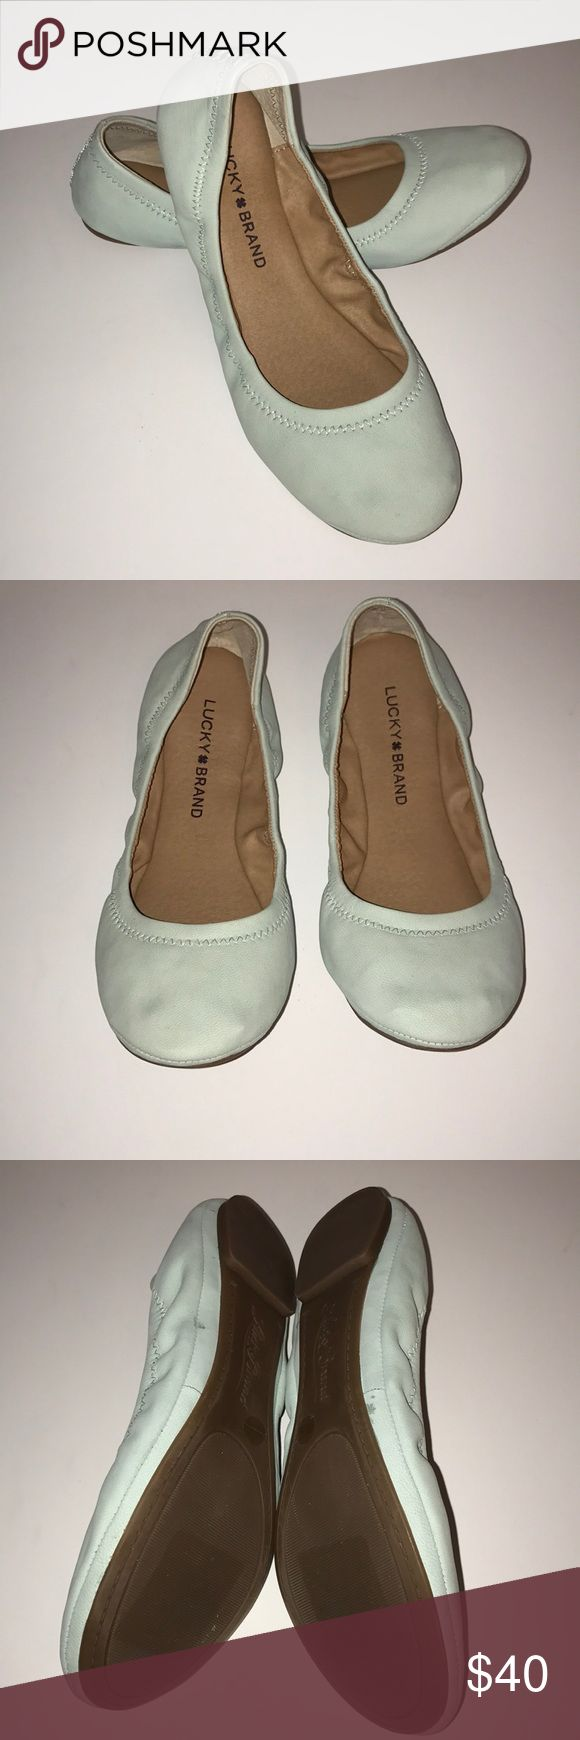 Lucky Brand flats Silt green Lucky Brand flats, new with box. Lucky Brand Shoes Flats & Loafers